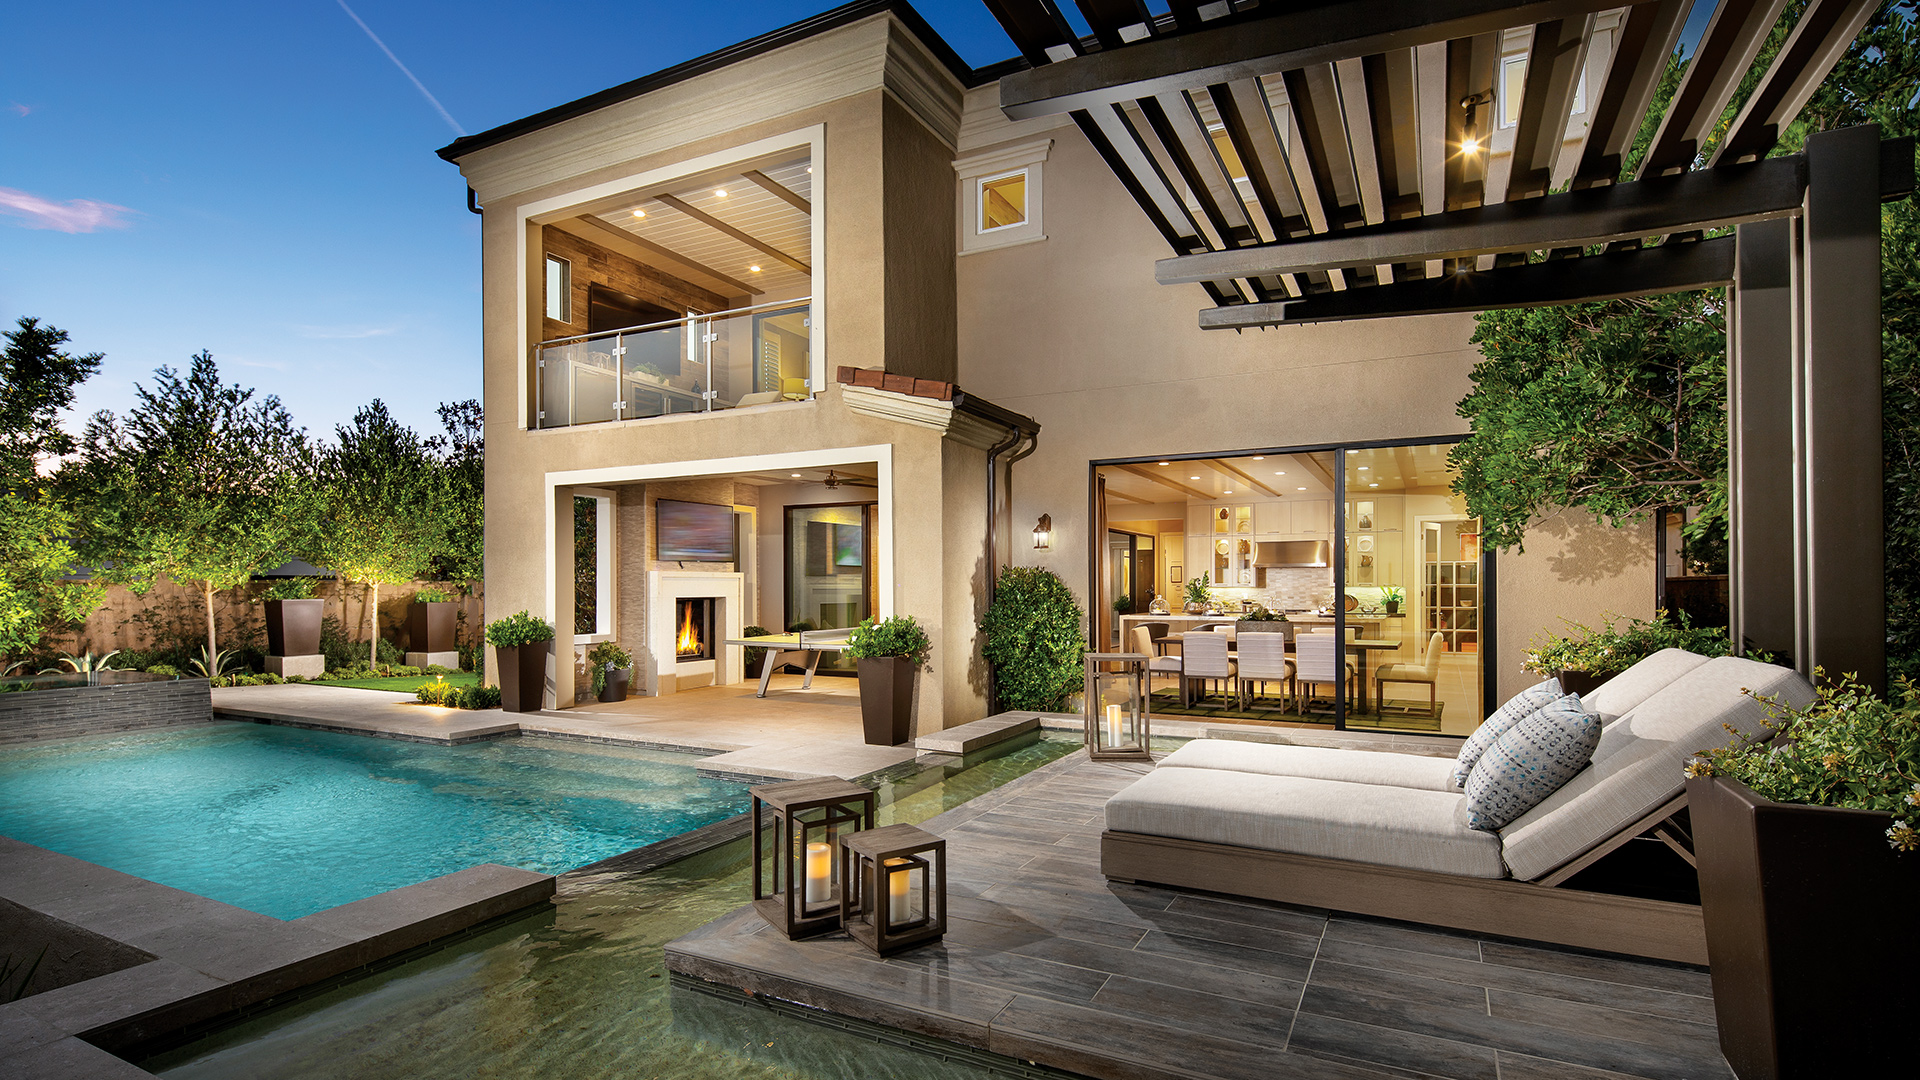 New Luxury Homes for Sale in Porter Ranch, CA | Hillcrest ... on Cc Outdoor Living id=61451